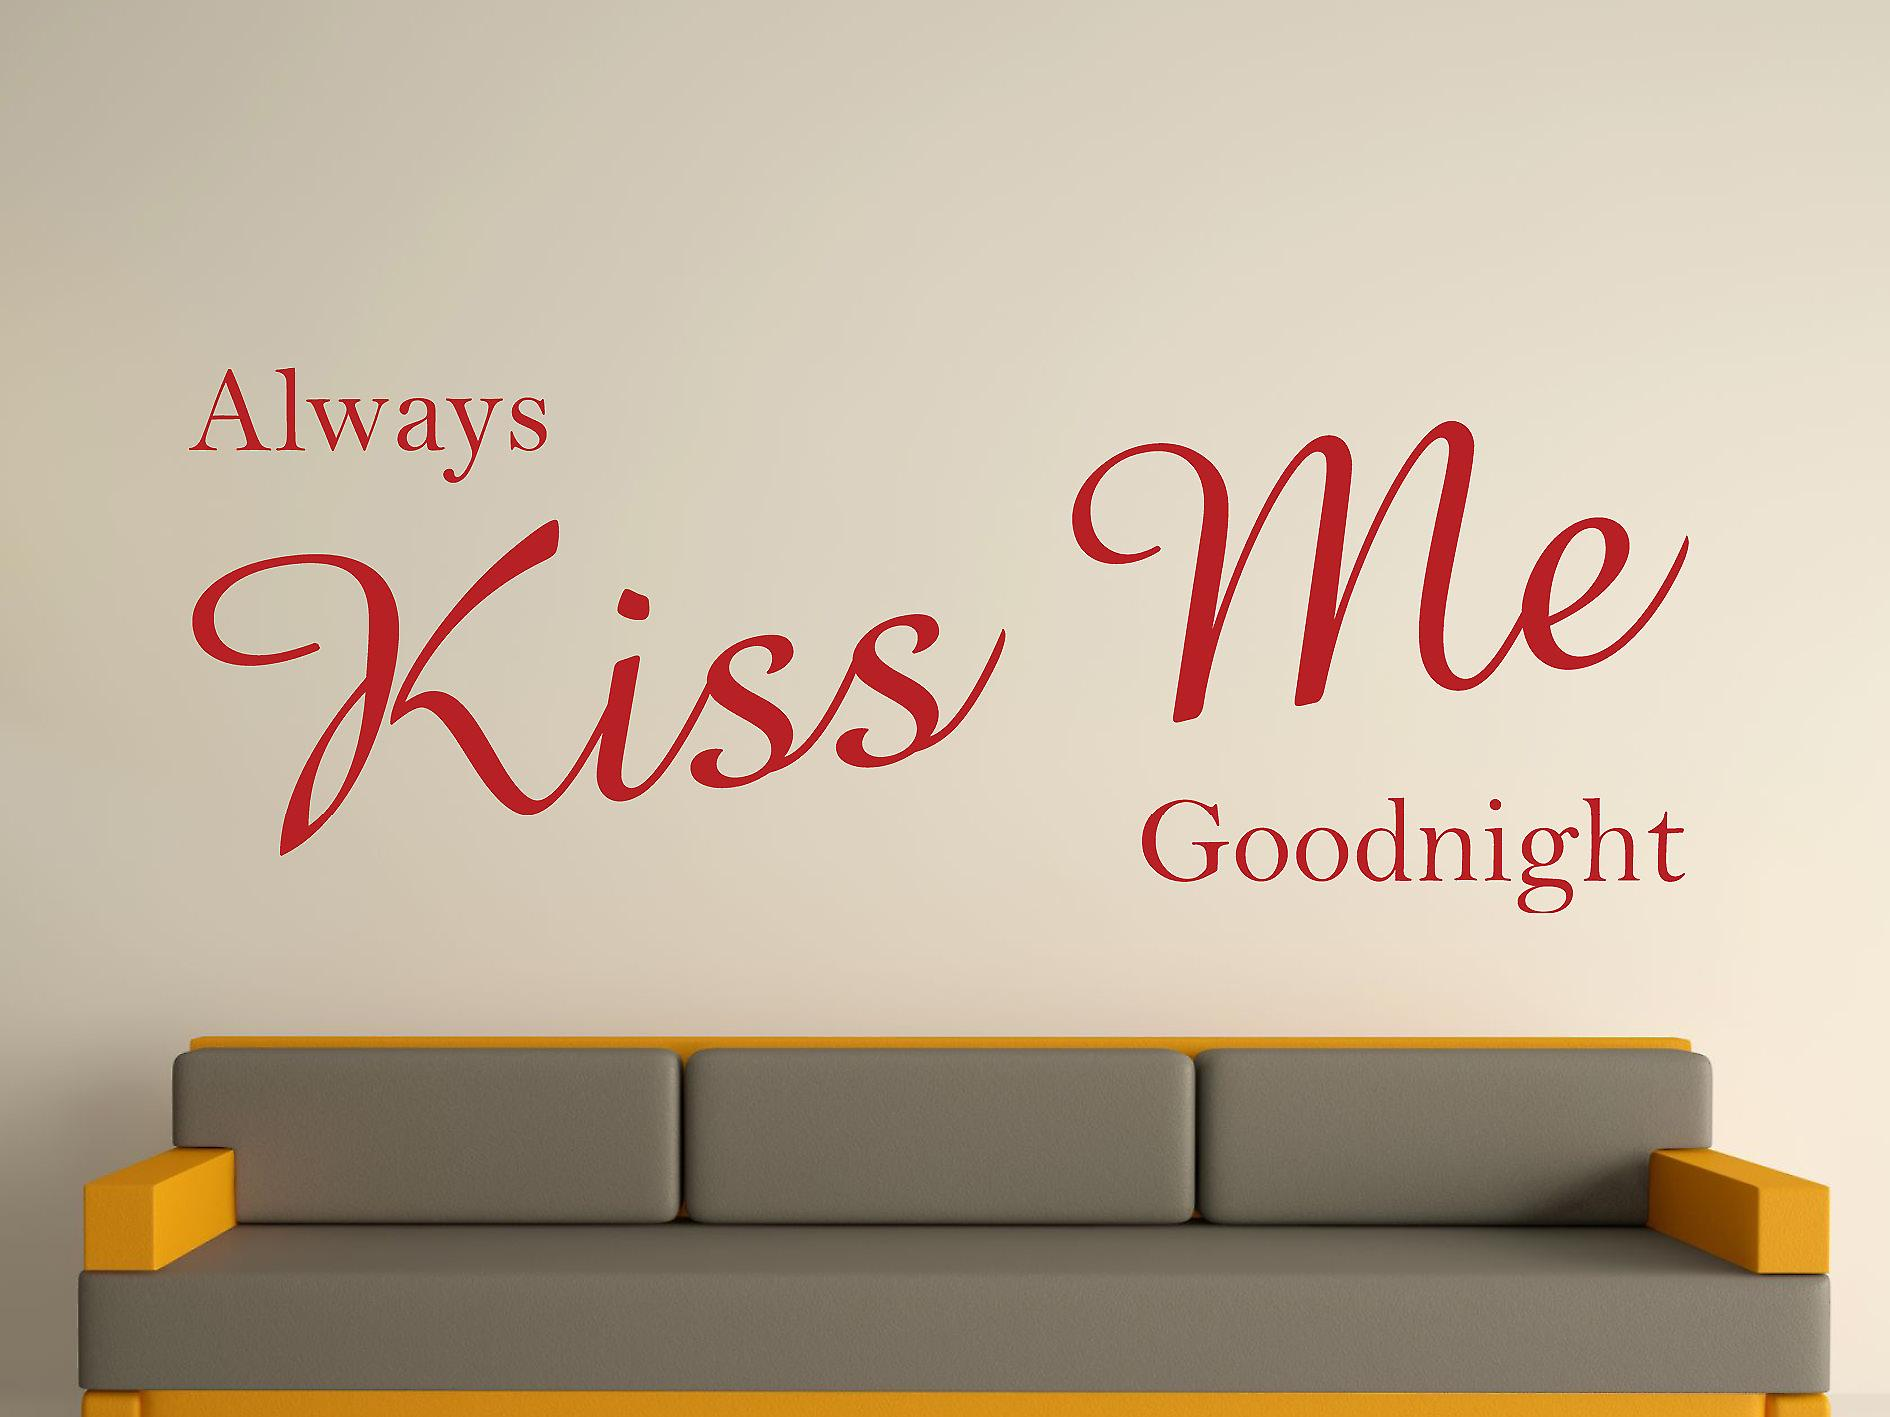 Always Kiss Me Goodnight Wall Art Sticker - Dark Red